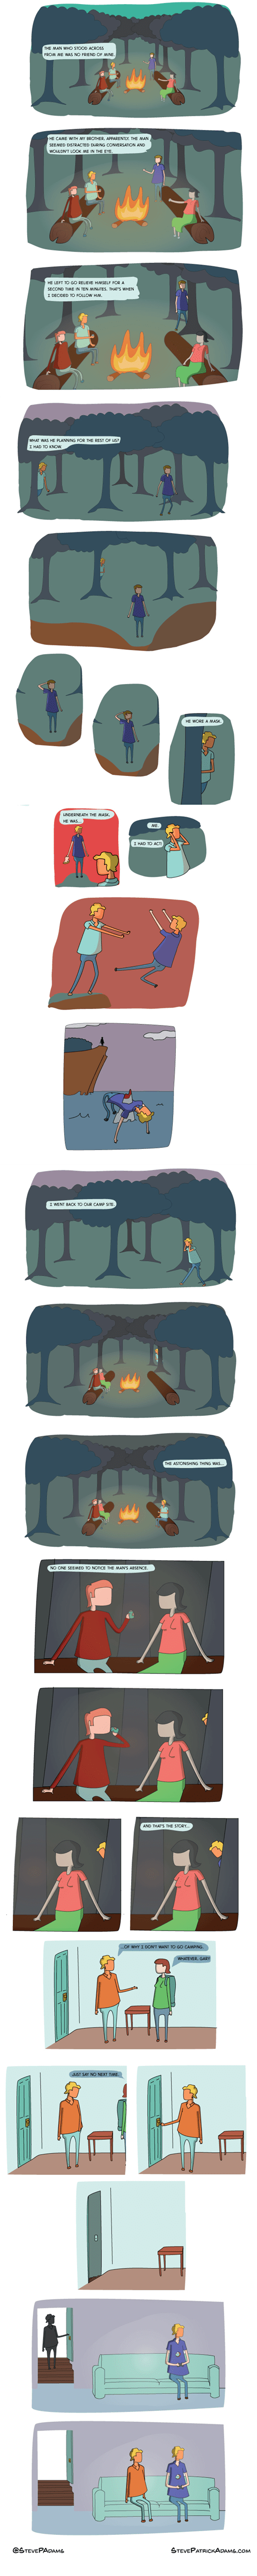 wtf,creepy,doppleganger,camping,web comics